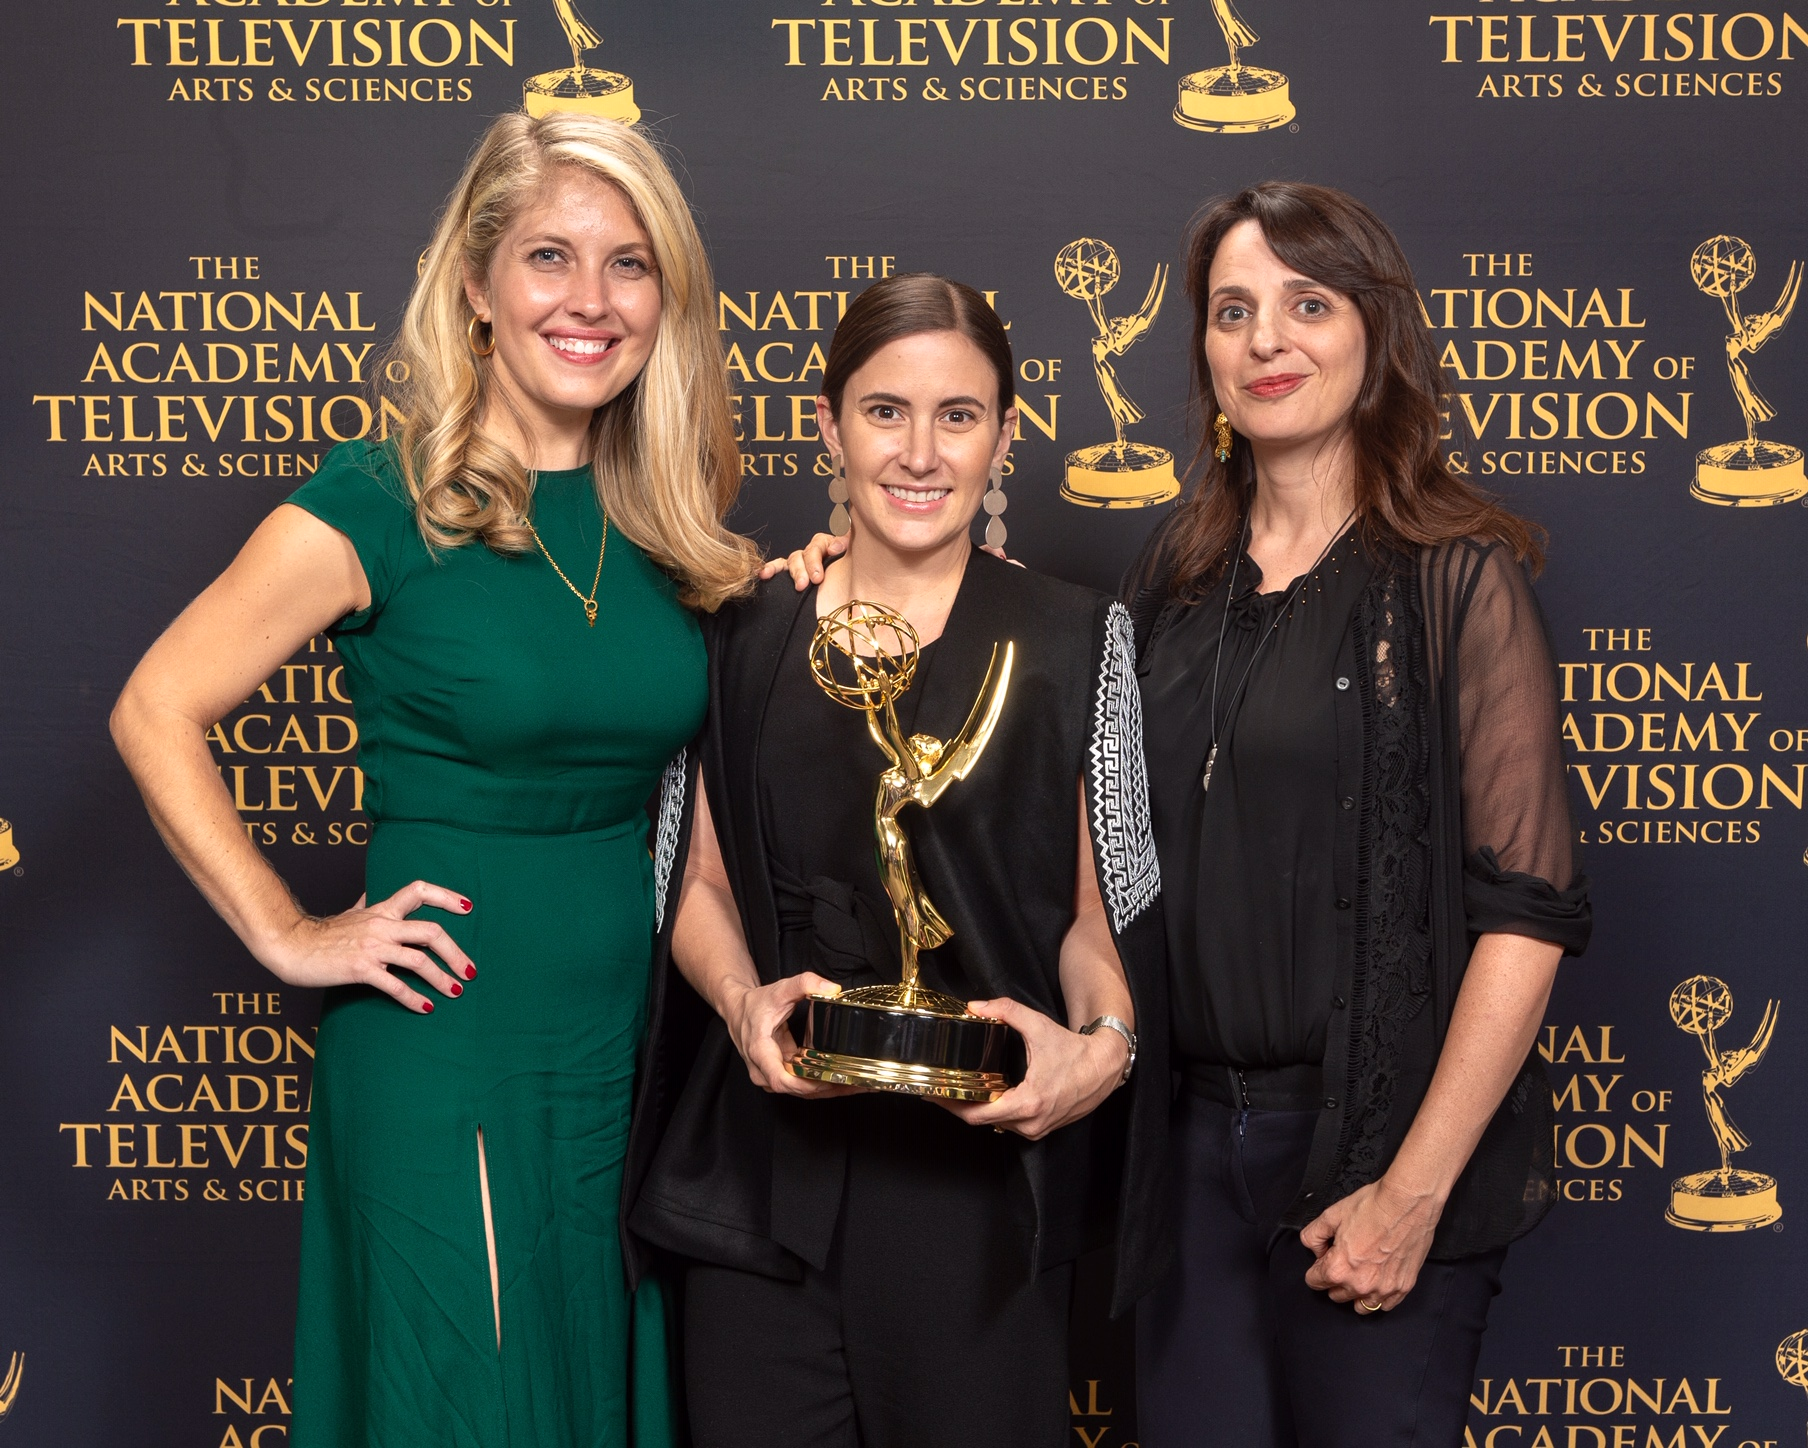 EHRP-Supported Film Wins Emmy